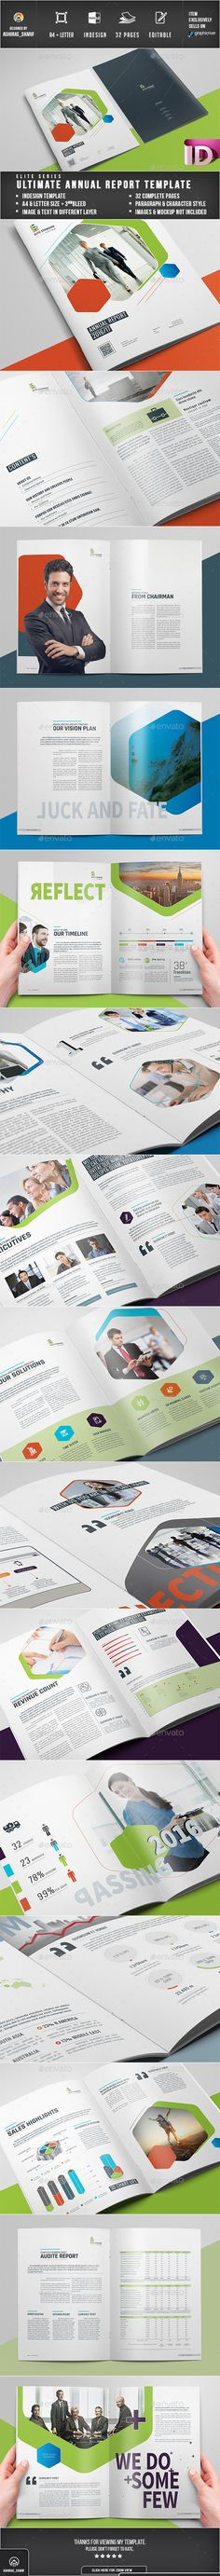 433 best Annual Report Templates images on Pinterest Brochure - free invoice forms to print